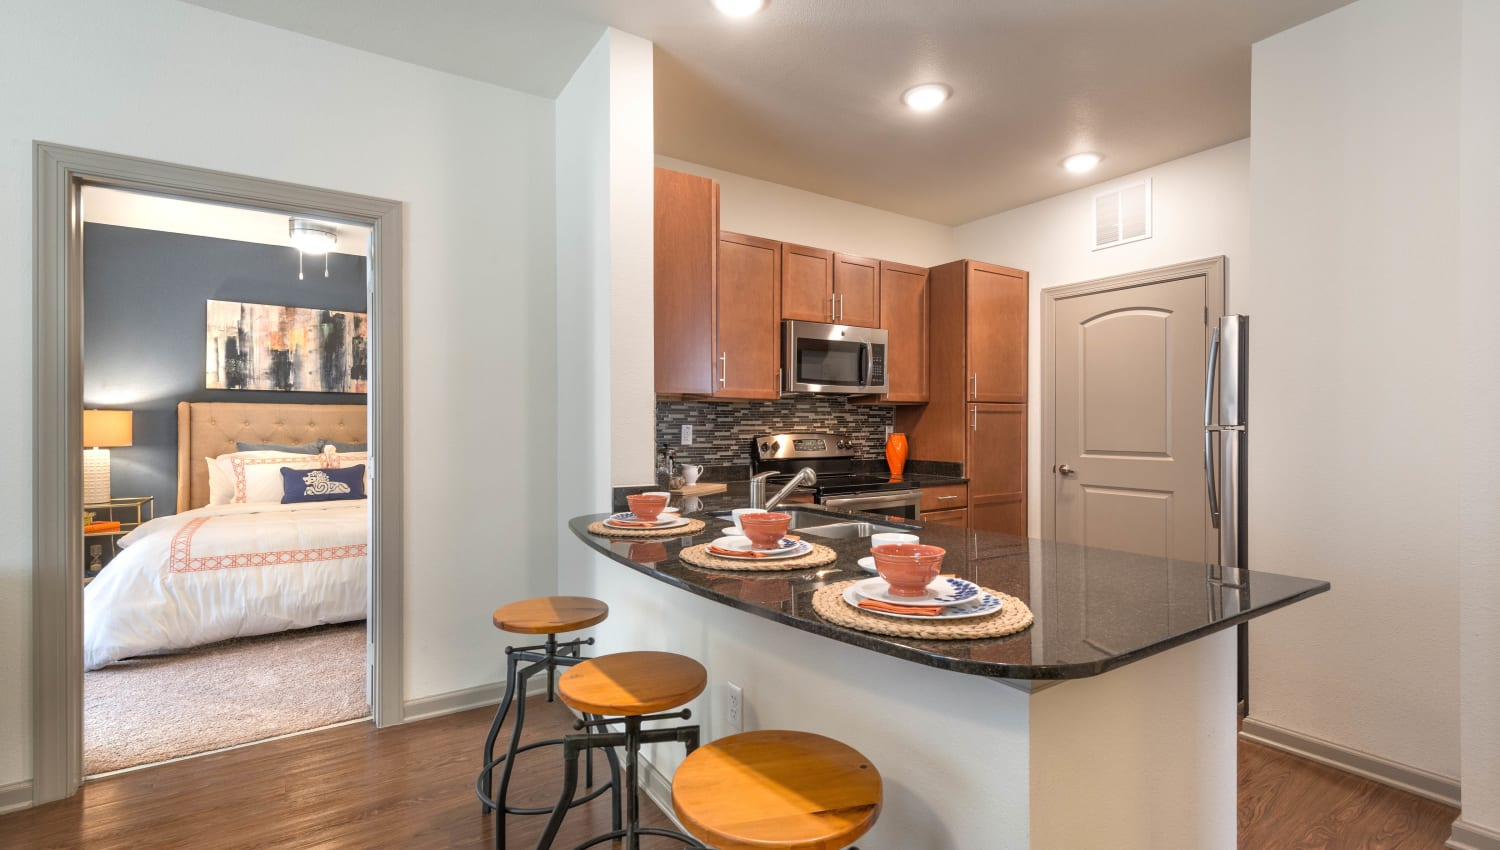 Gourmet kitchen with an island in a model home at Olympus Waterford in Keller, Texas